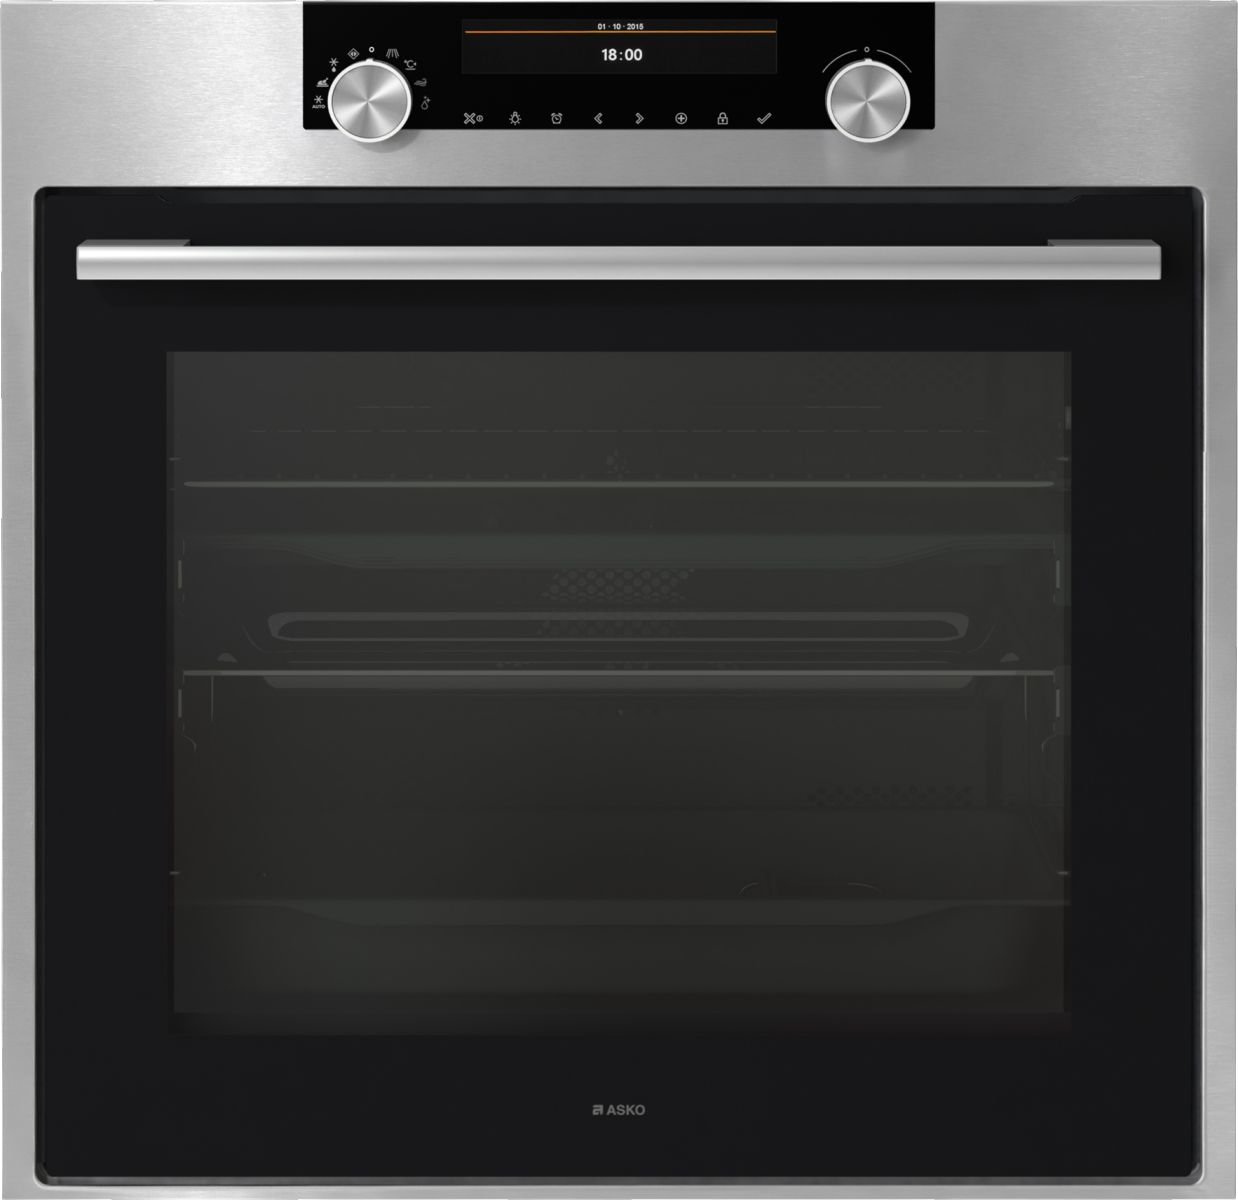 asko built in pyrolytic oven in stainless steel available at asko rh asko com au Convection Oven Microwave Oven